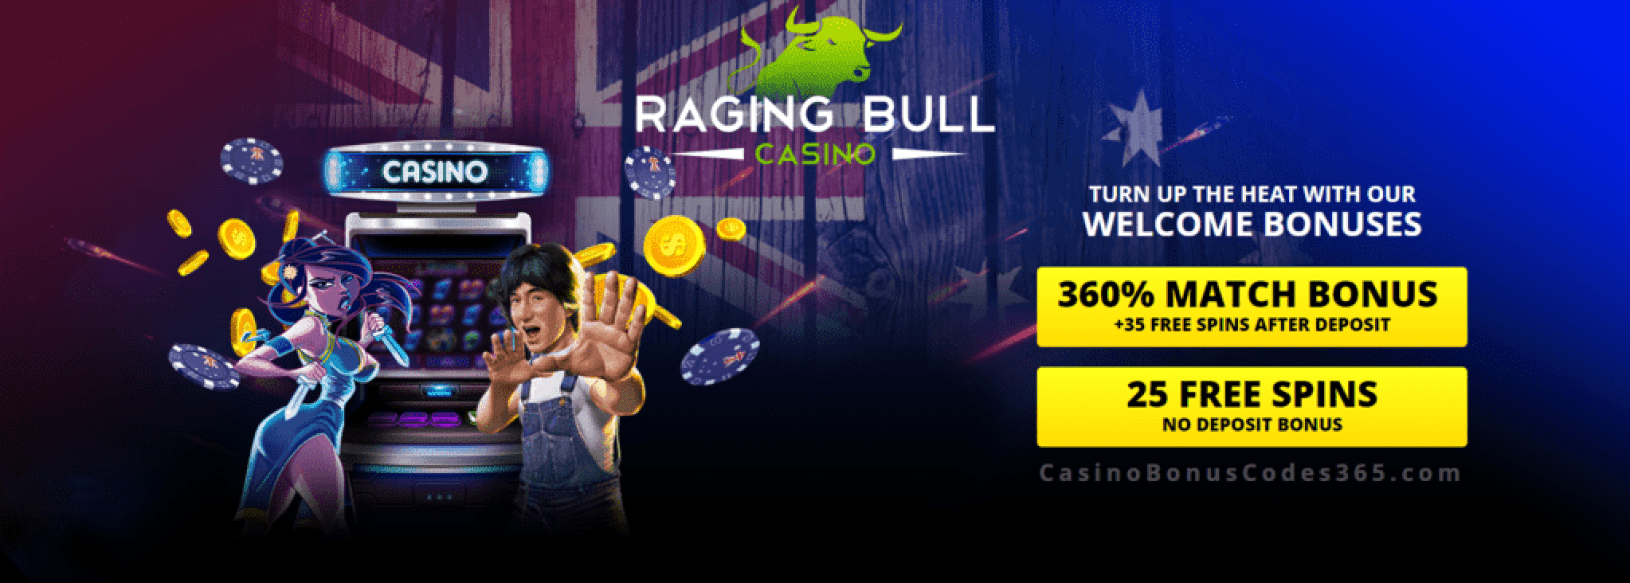 Raging Bull Casino 360% Match Bonus plus 60 FREE Spins Welcome Package RTG i Zombie Fire Dragon